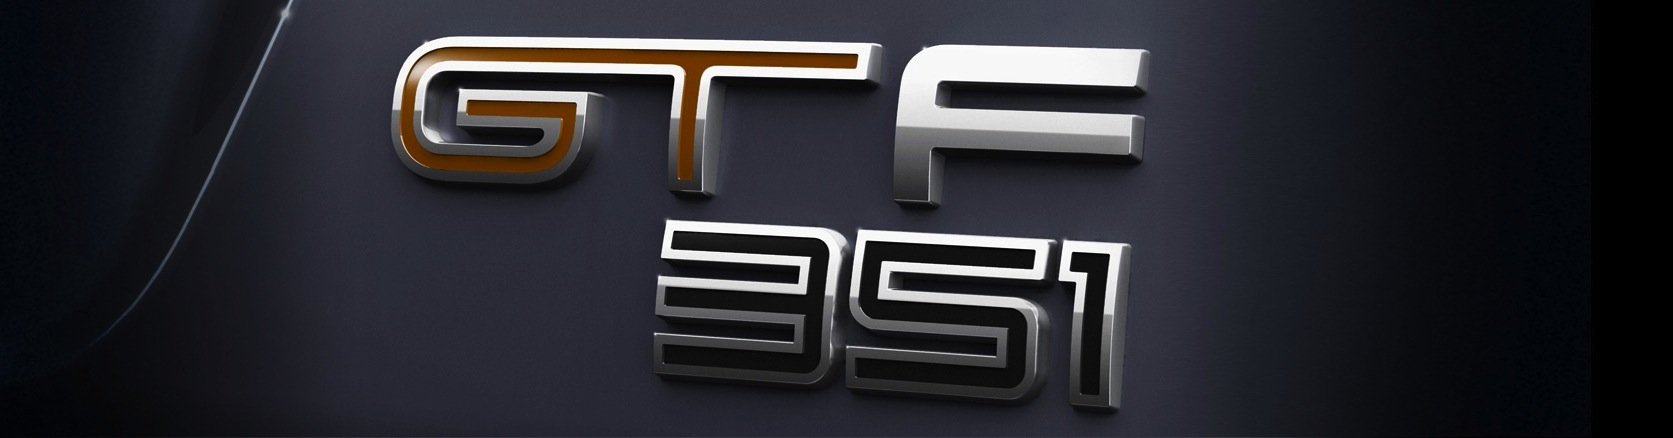 Fpv Gt F  Iconic Badge Returns For Kw V Powered Final Ford Falcon